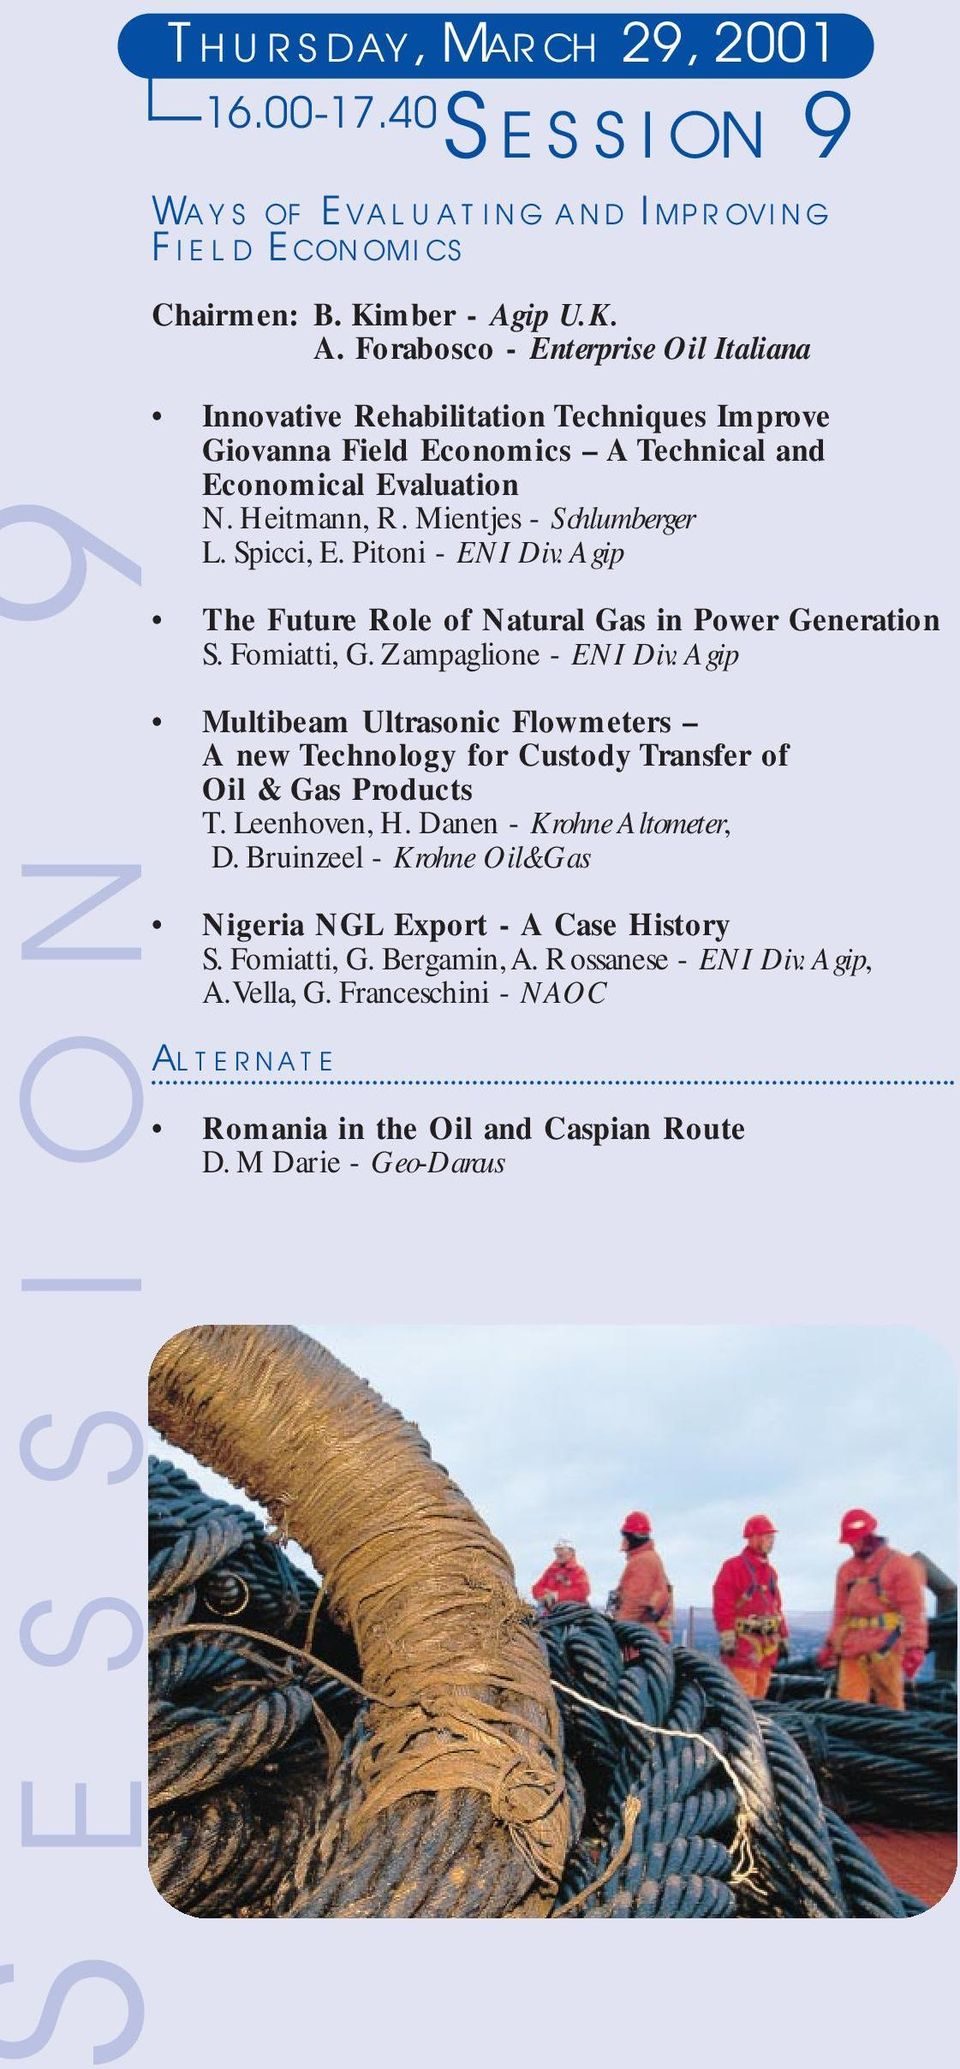 Mientjes - Schlumberger L. Spicci, E. Pitoni - ENI Div.Agip The Future Role of Natural Gas in Power Generation S. Fomiatti, G. Zampaglione - ENI Div.